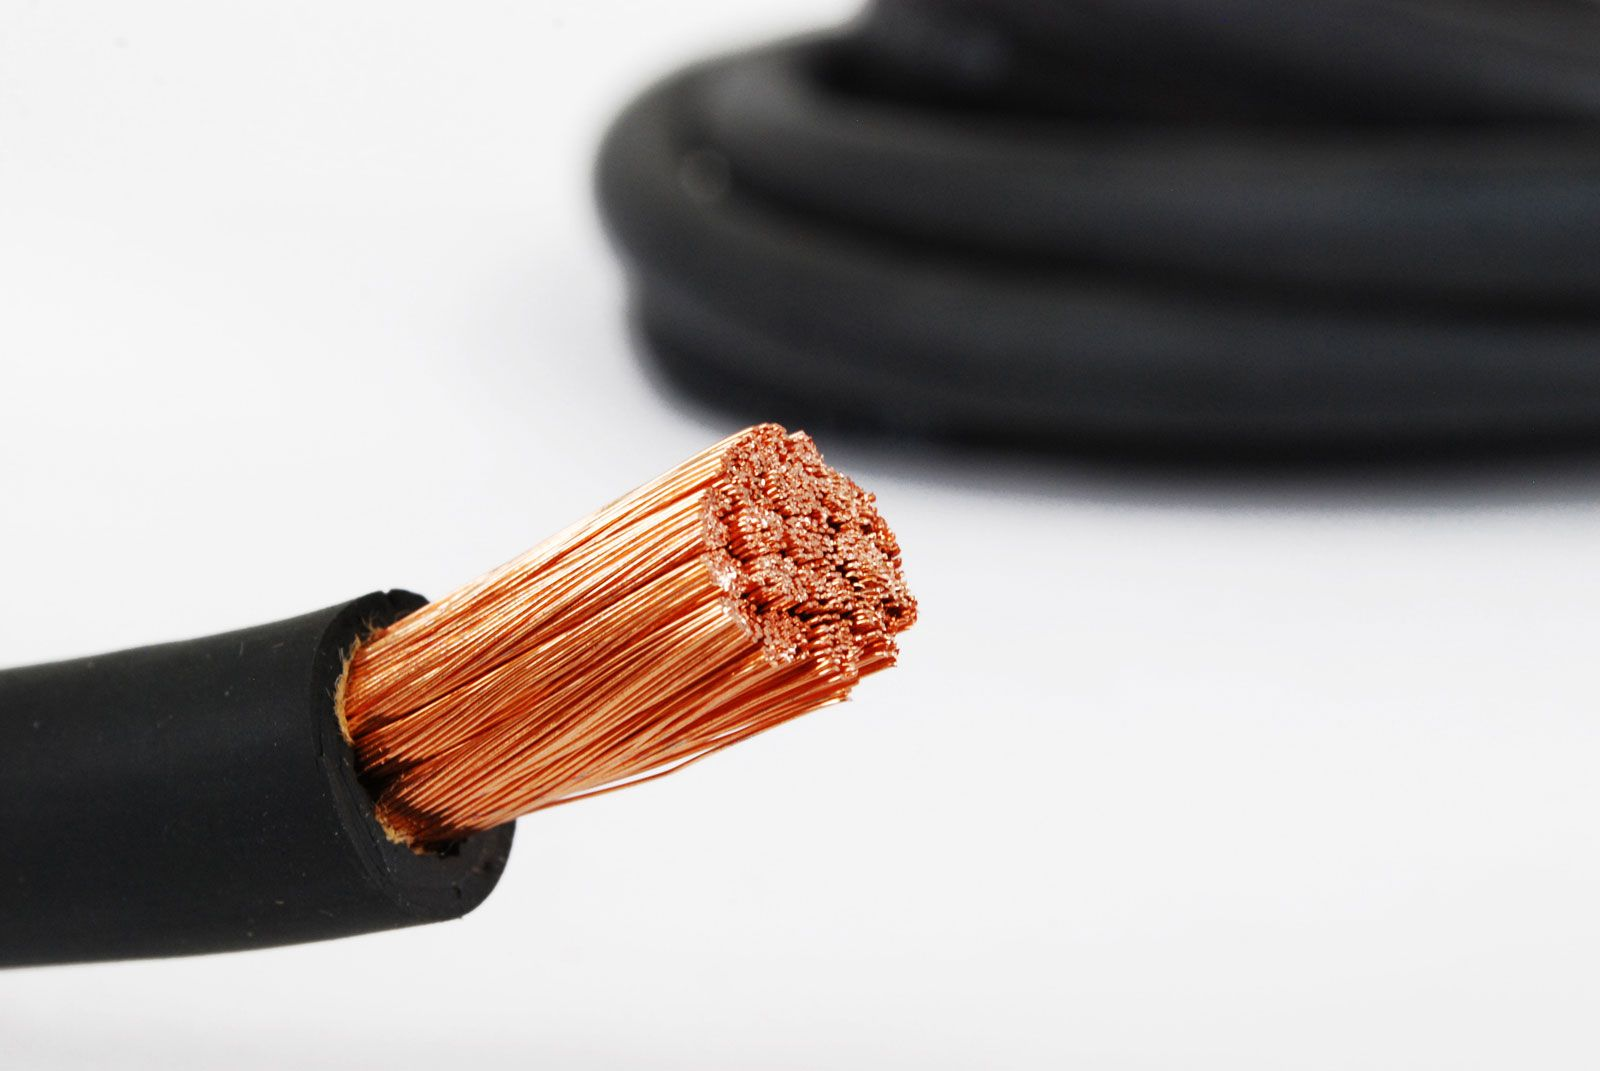 Welding Cable 4 0 Gauge Wire 50ft 15 3m Long Global Solar Supply Welding Cable Welding Leads Welding